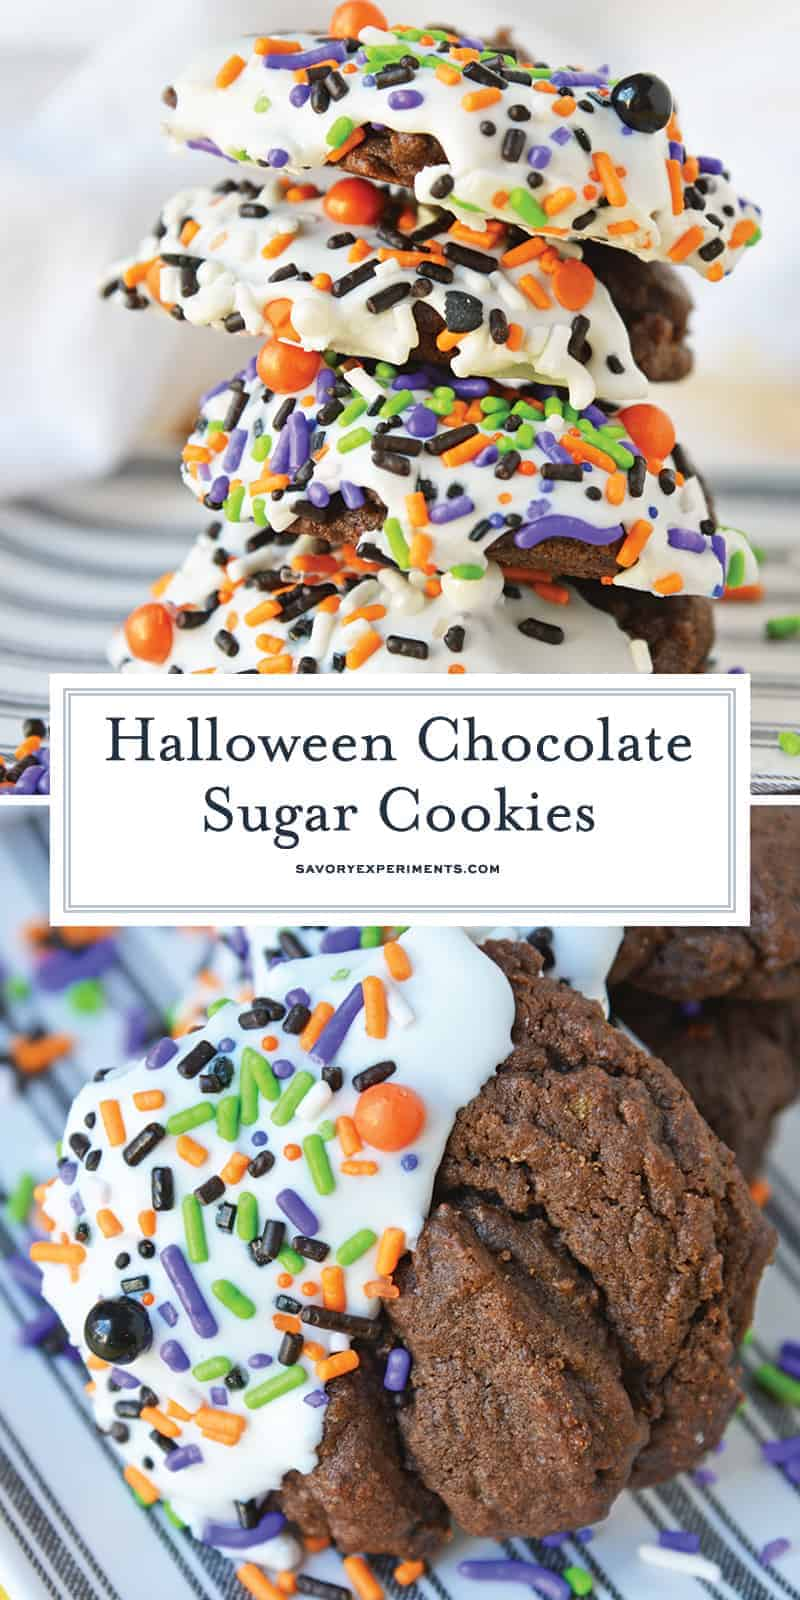 Halloween Chocolate Sugar Cookies combine soft sugar cookies with a delicious chocolate flavor, cookie icing and sprinkles for an easy Halloween dessert! #halloweencookies #chocolatesugarcookies #halloweendesserts www.savoryexperiments.com